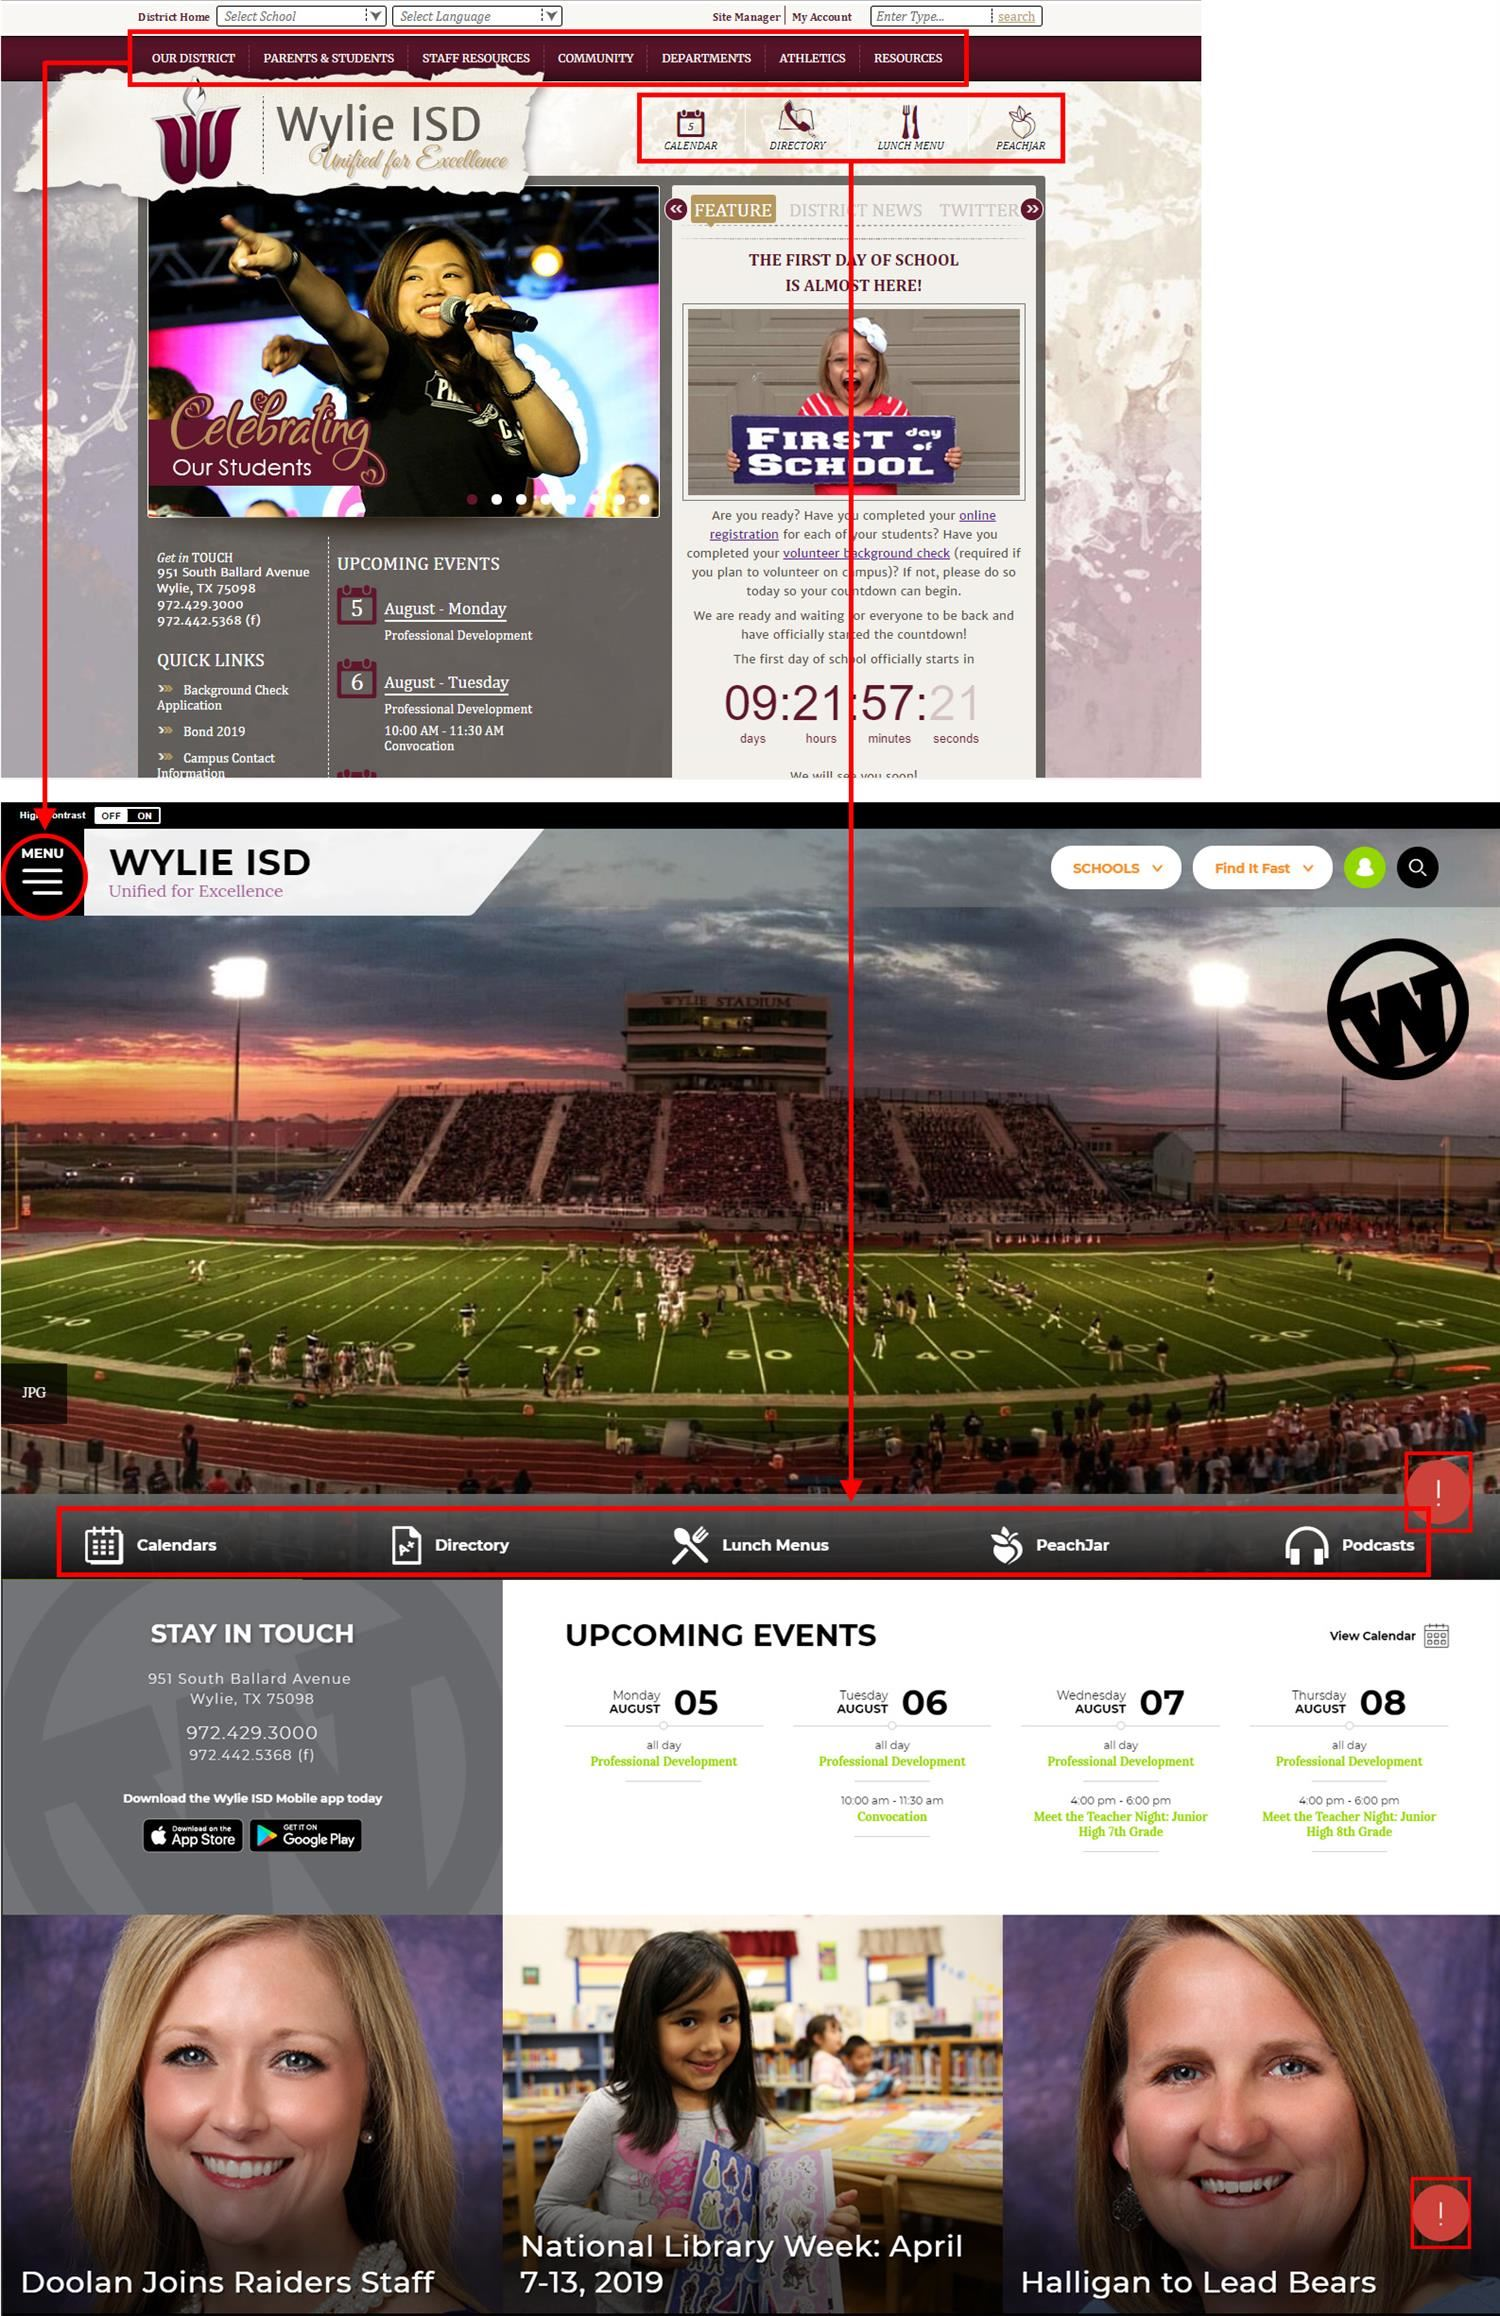 Wylie ISD Website Update Information.  Shows how navigation will move when new update is applied.